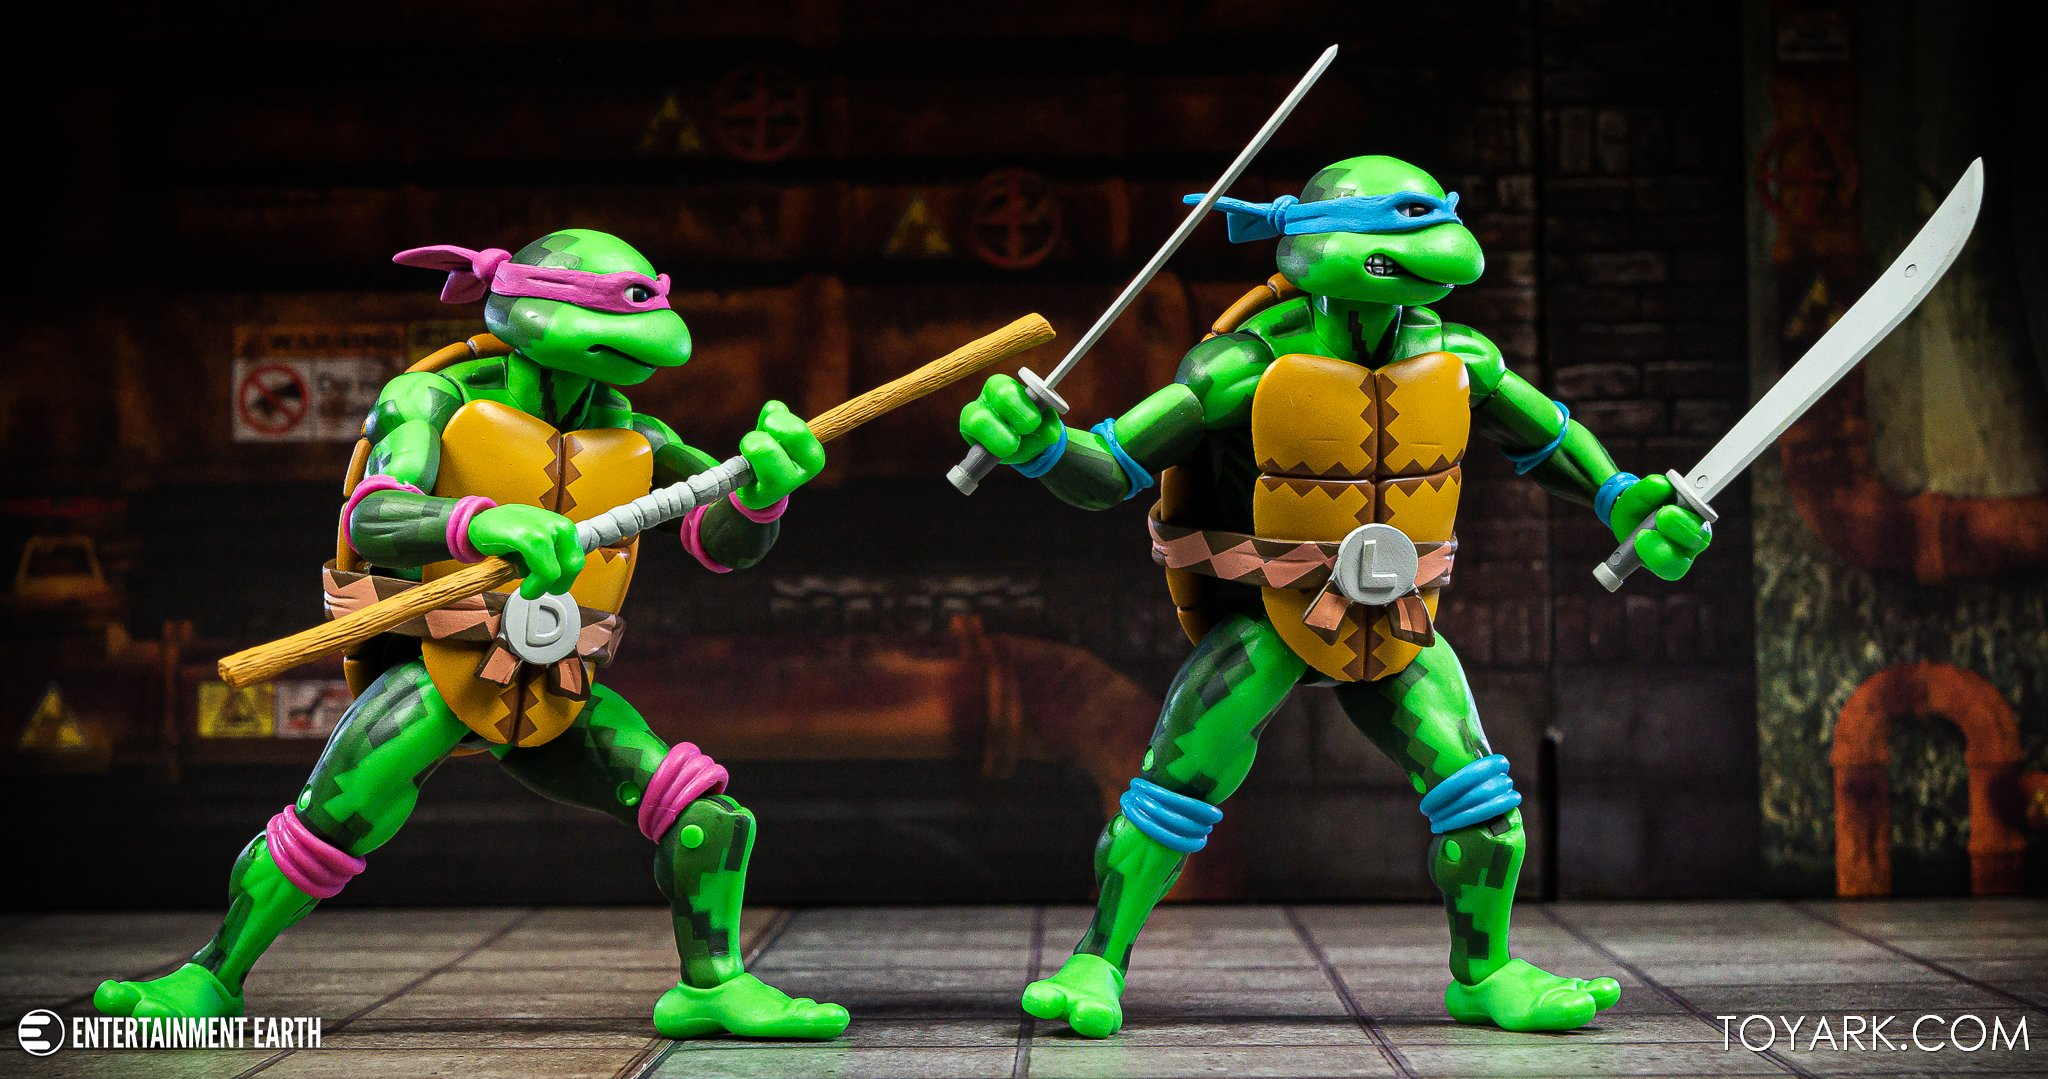 https://news.toyark.com/wp-content/uploads/sites/4/2020/06/NECA-TMNT-Turtles-In-Time-S1-040.jpg